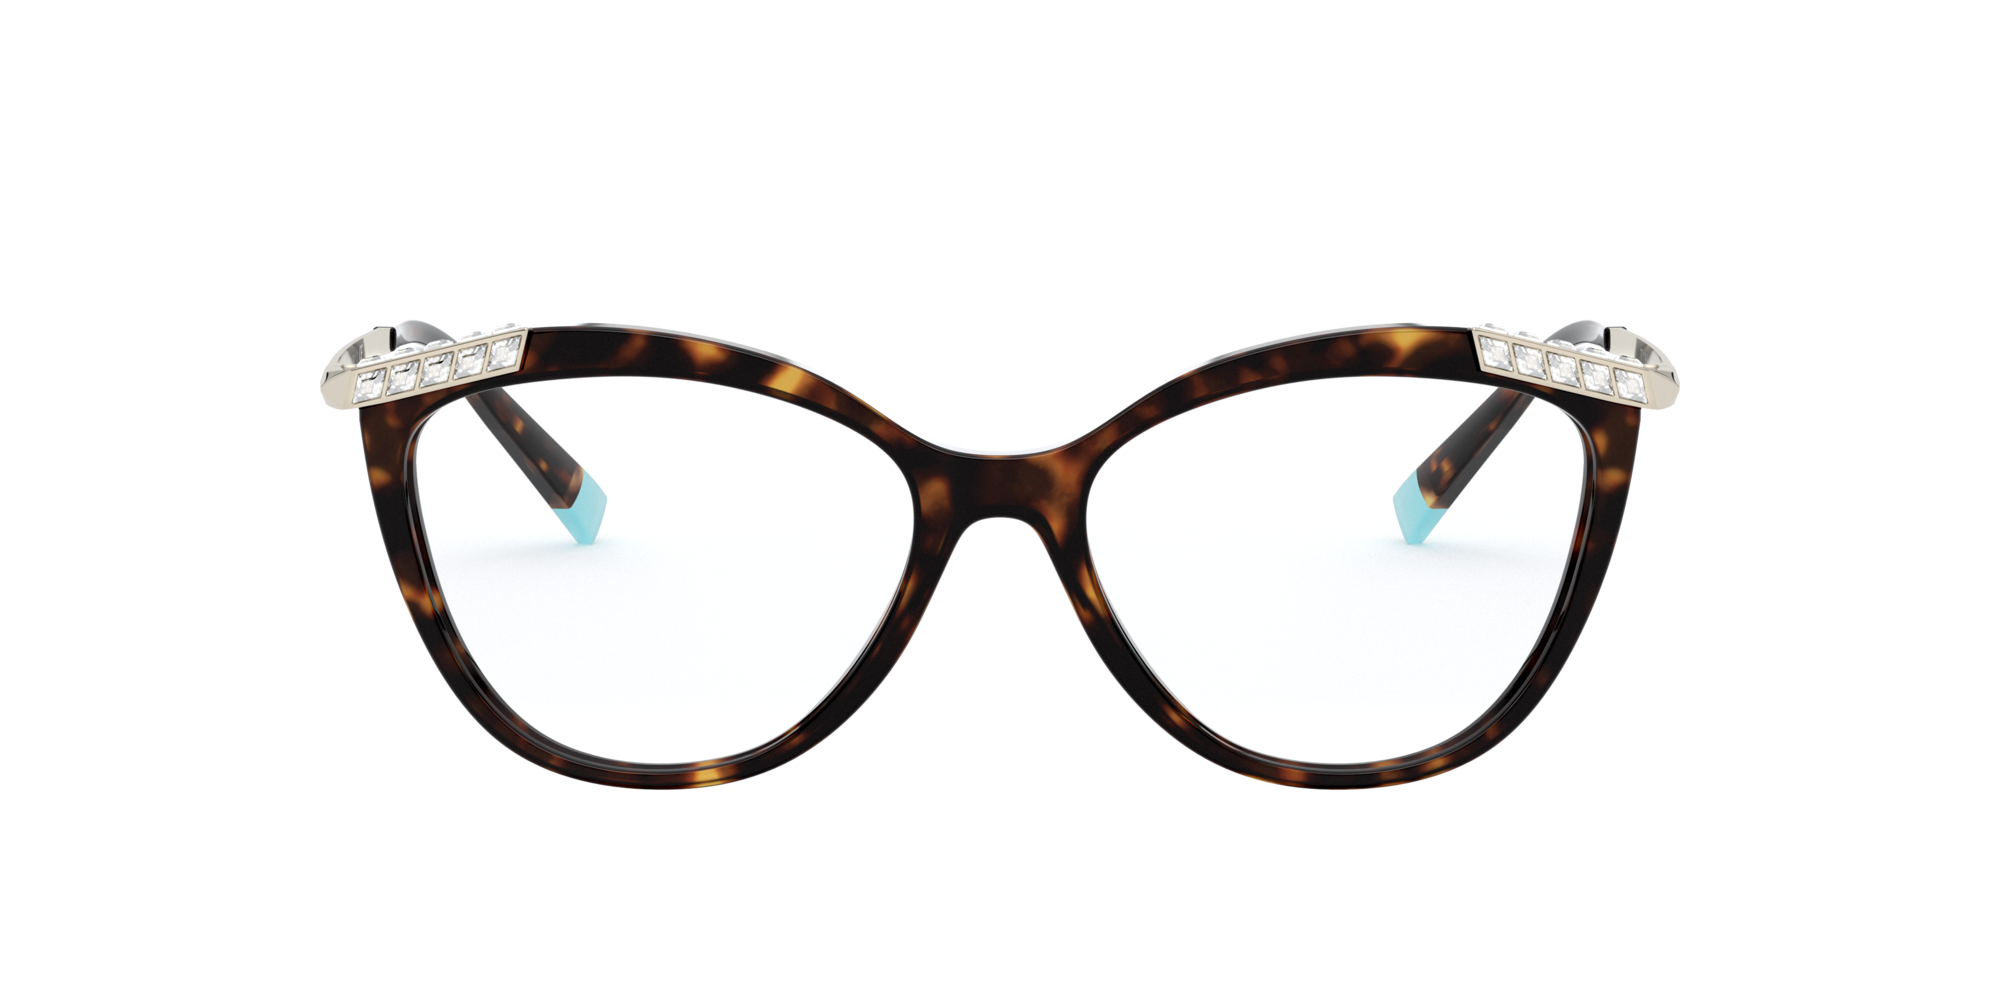 Image for TF2198B from LensCrafters | Glasses, Prescription Glasses Online, Eyewear